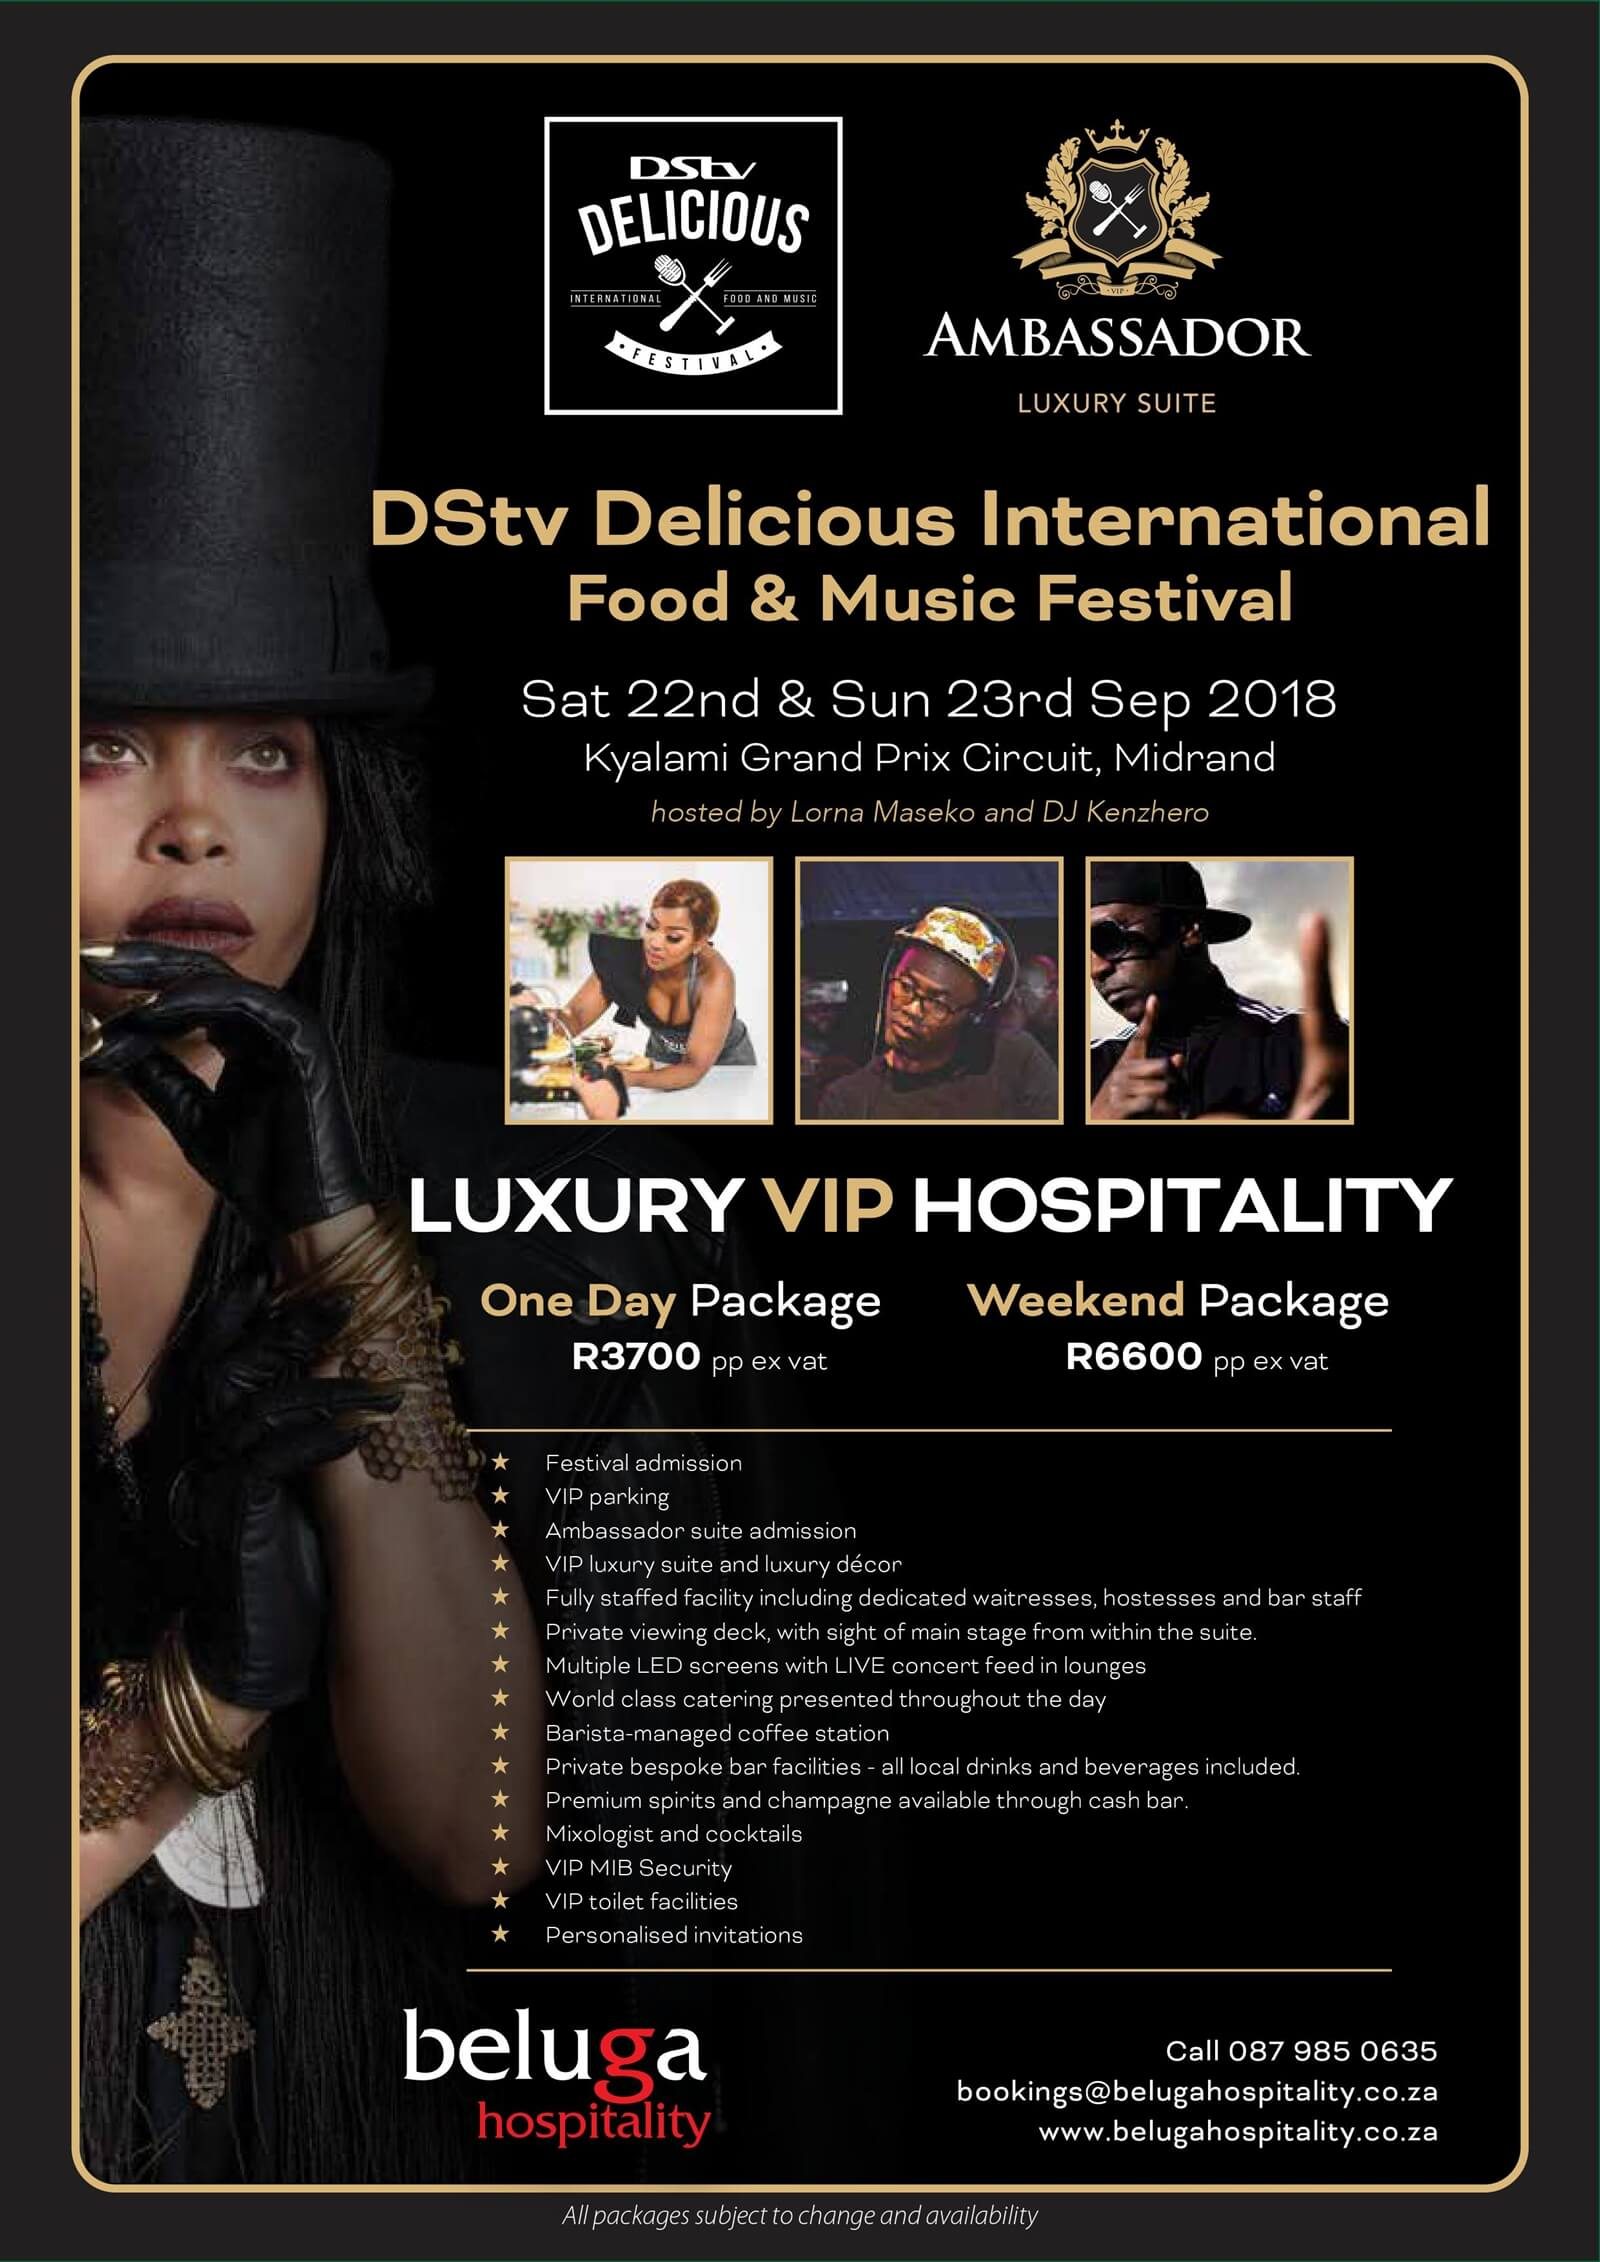 DStv Delicious International Food and Music Festival 2018 - Beluga Hospitality-flyer